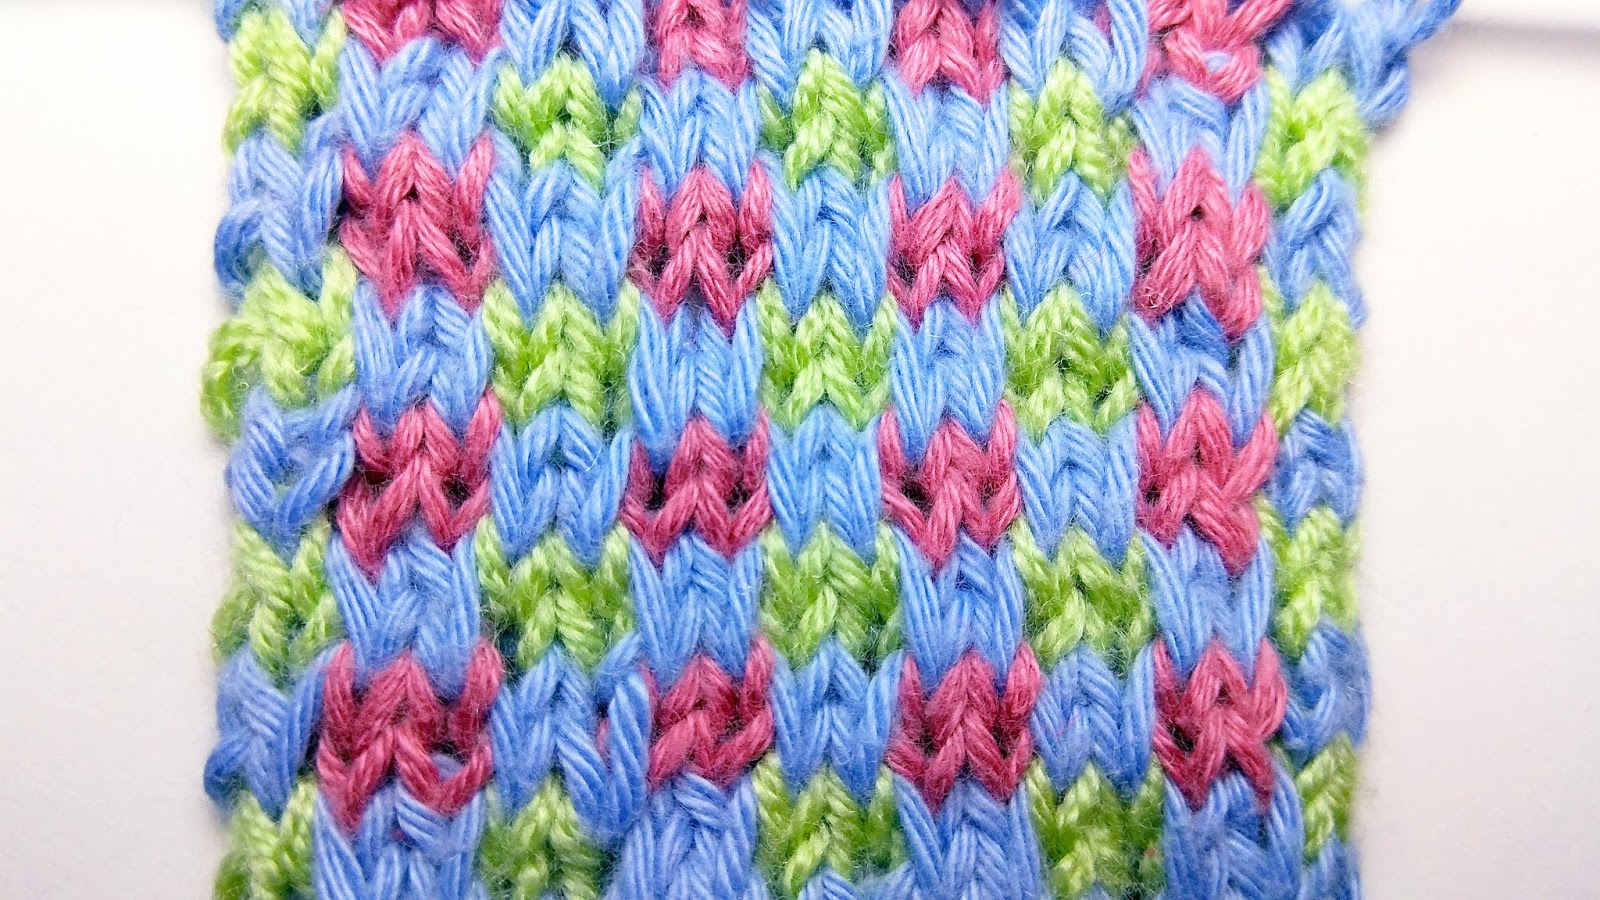 Colored Chess - Knitting Stitch